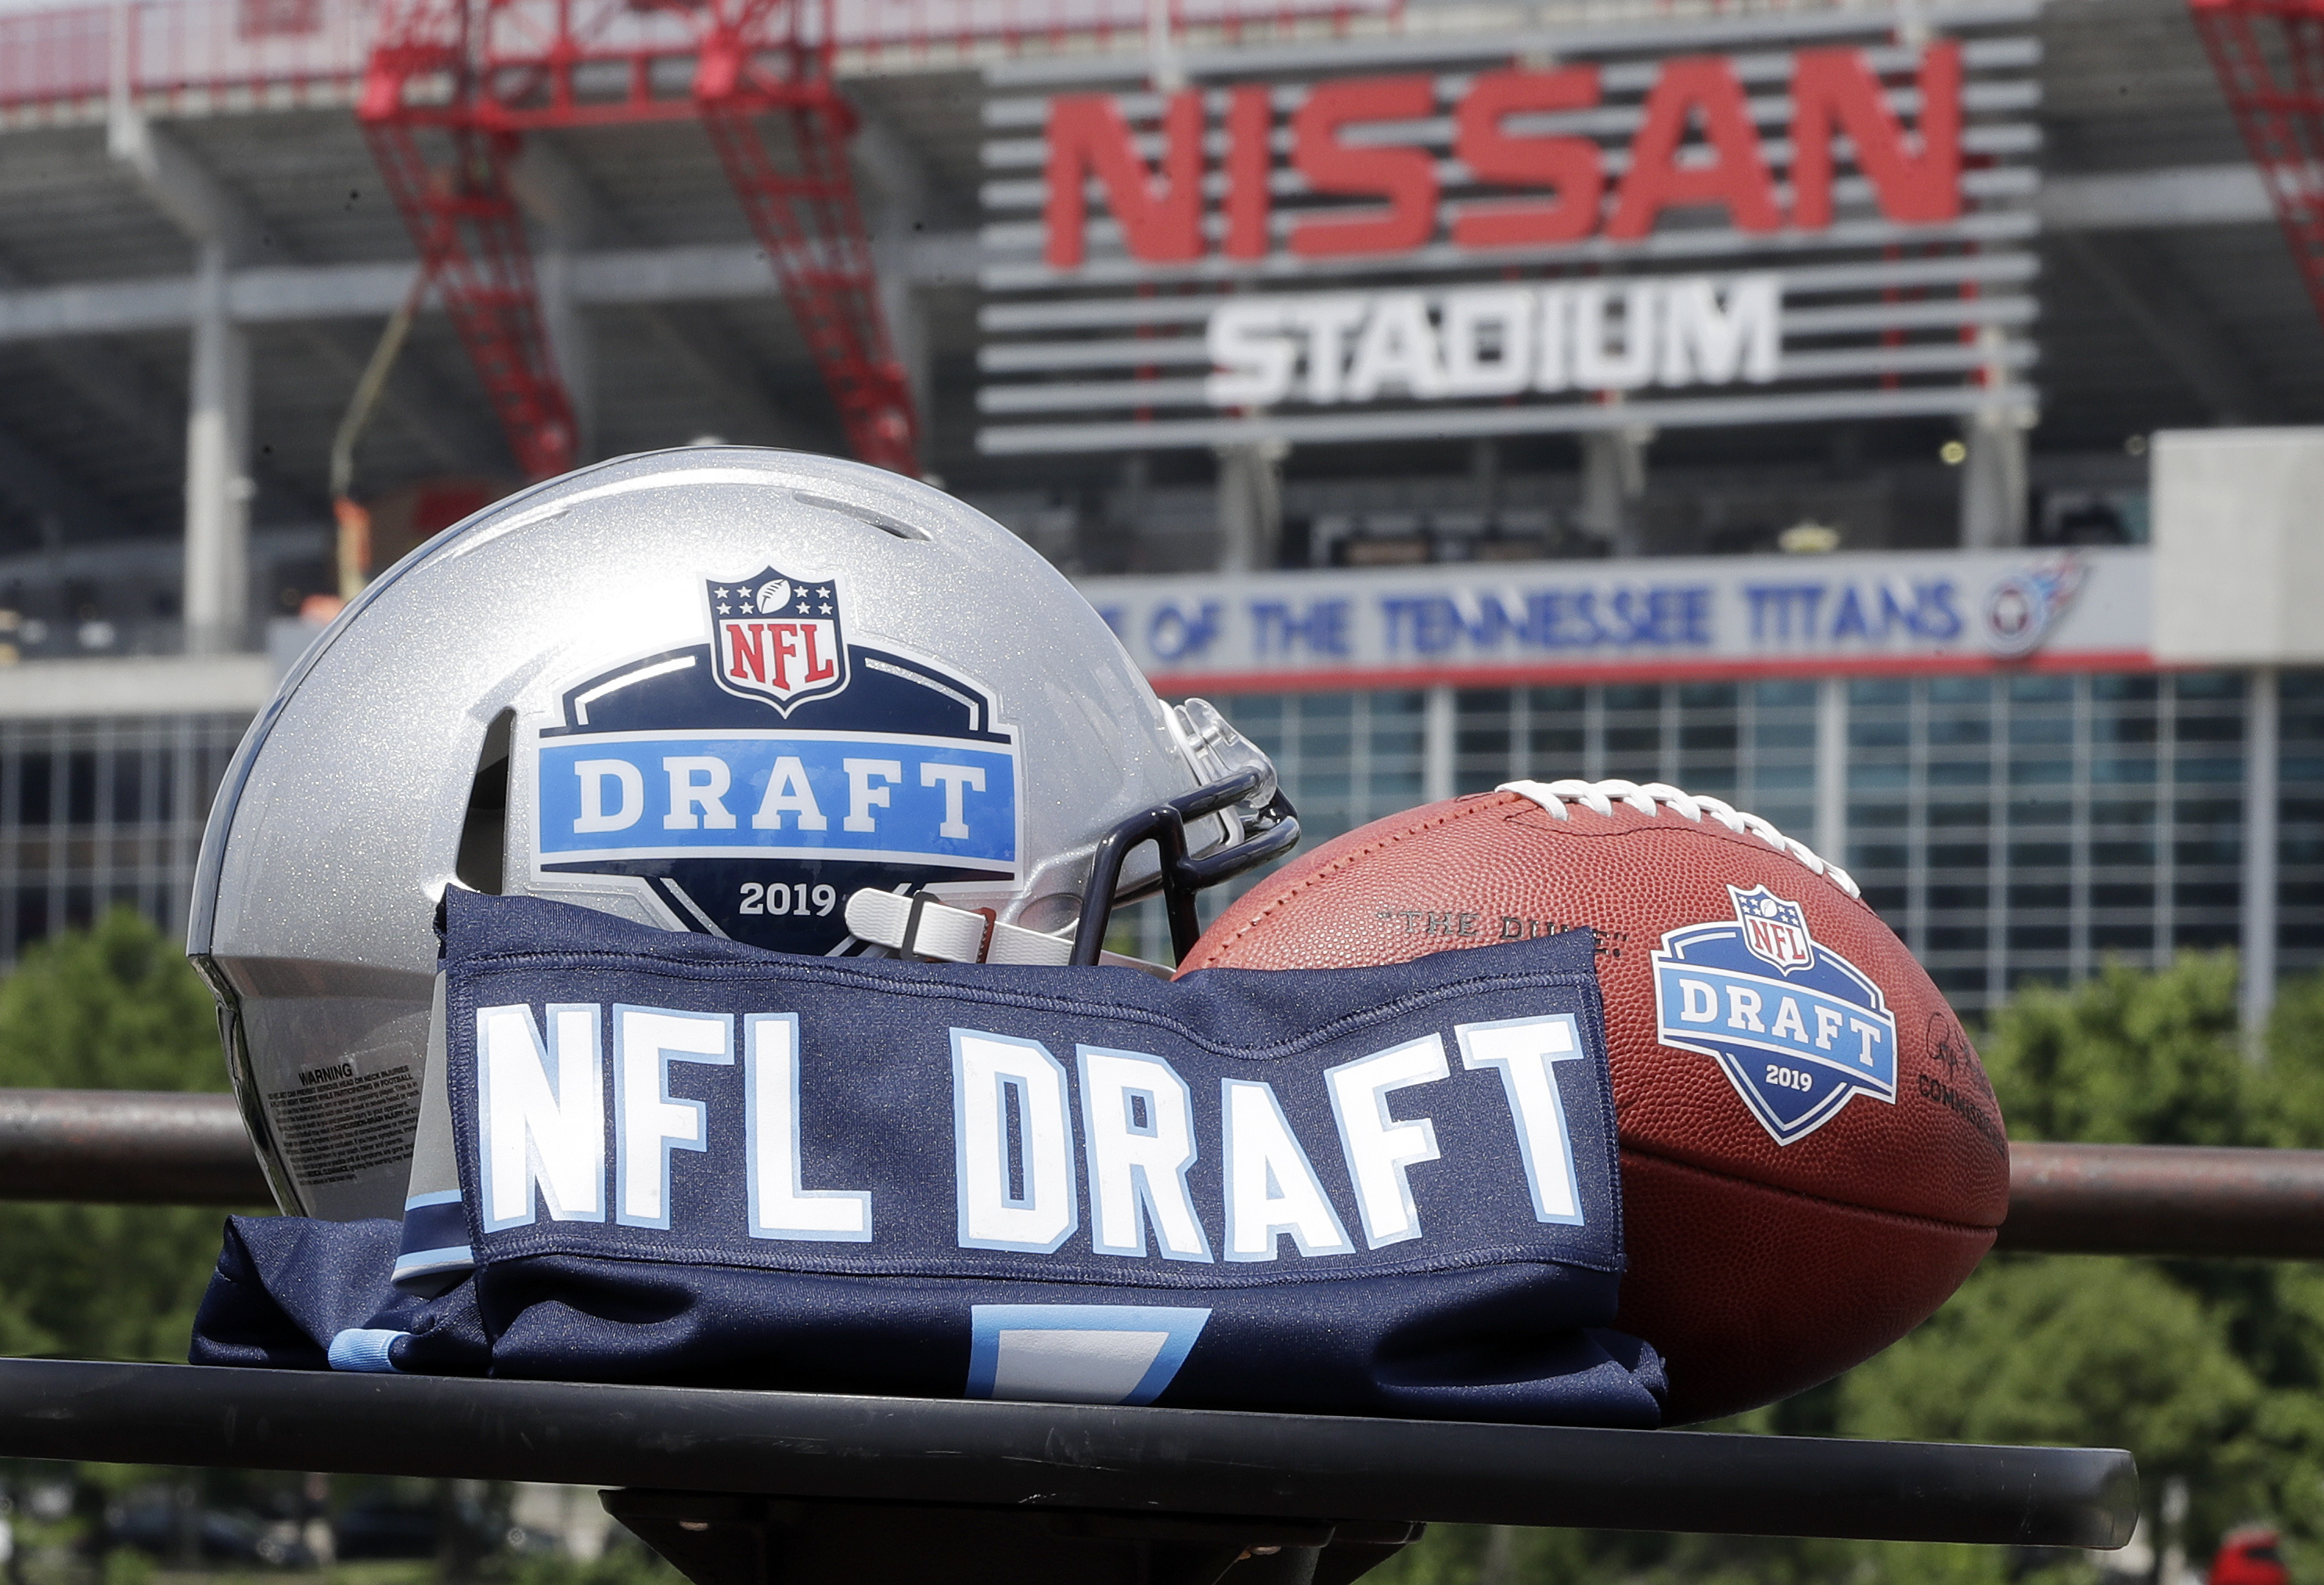 NFL Draft 2019: Latest rumors, news, deals | Raiders send home scouts? Dwayne Haskins to Giants? Bryce Love red flag? Eagles moving up? LIVE UPDATES